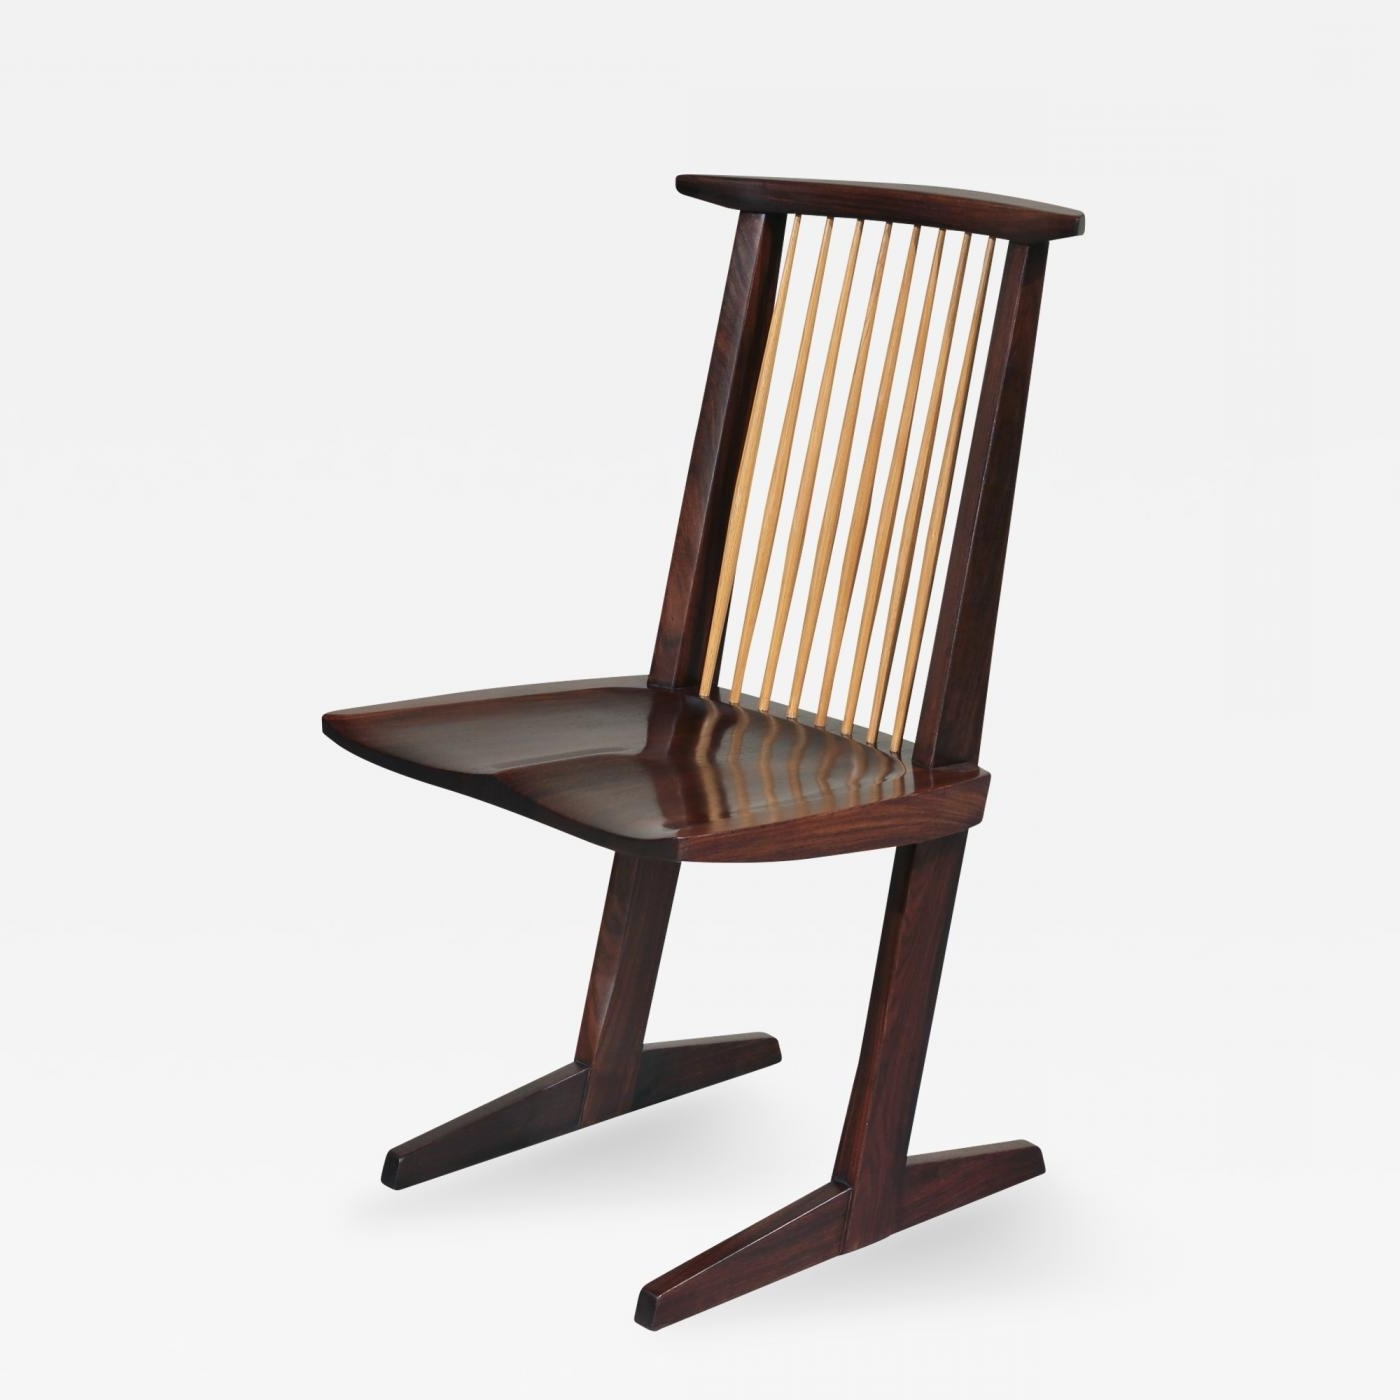 George Nakashima – 12 Extremely Rare East Indian Rosewood Conoid With Regard To Well Known Indian Dining Chairs (View 8 of 25)